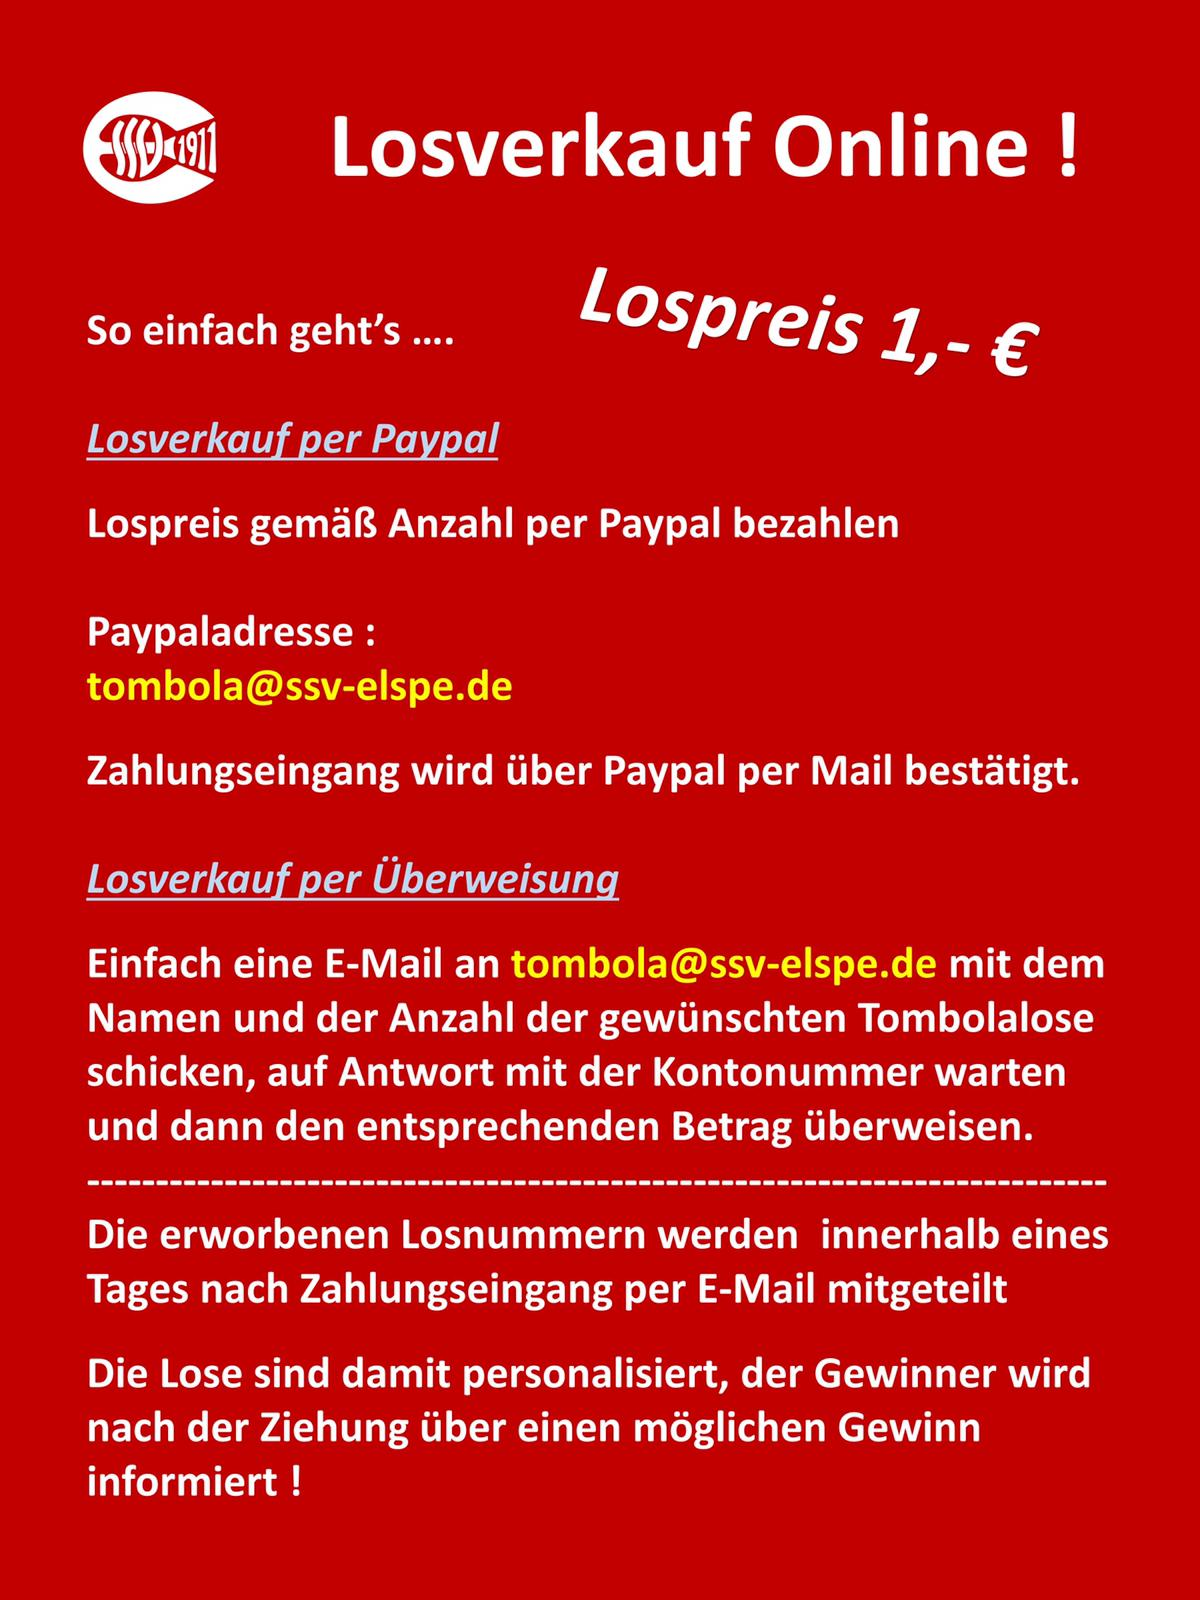 Tombola-Lose nun Online